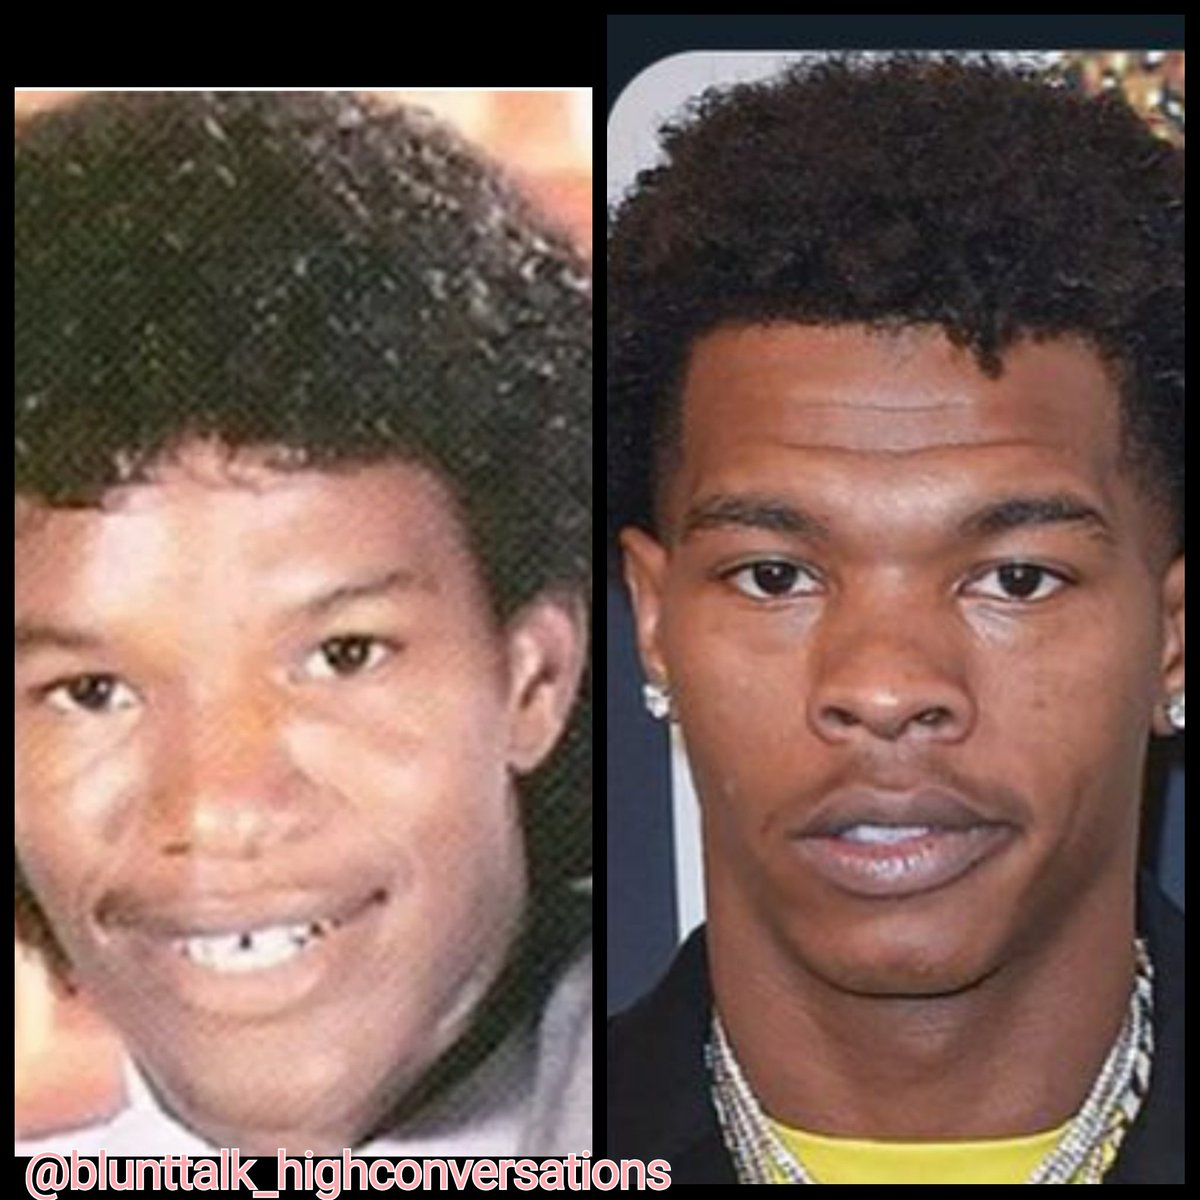 If @jamiefoxx is going to play Mike Tyson in a biopic then LiL Baby has to play Jamie Foxx when he gets a biopic  #biopics #mondaythoughts #LilBaby